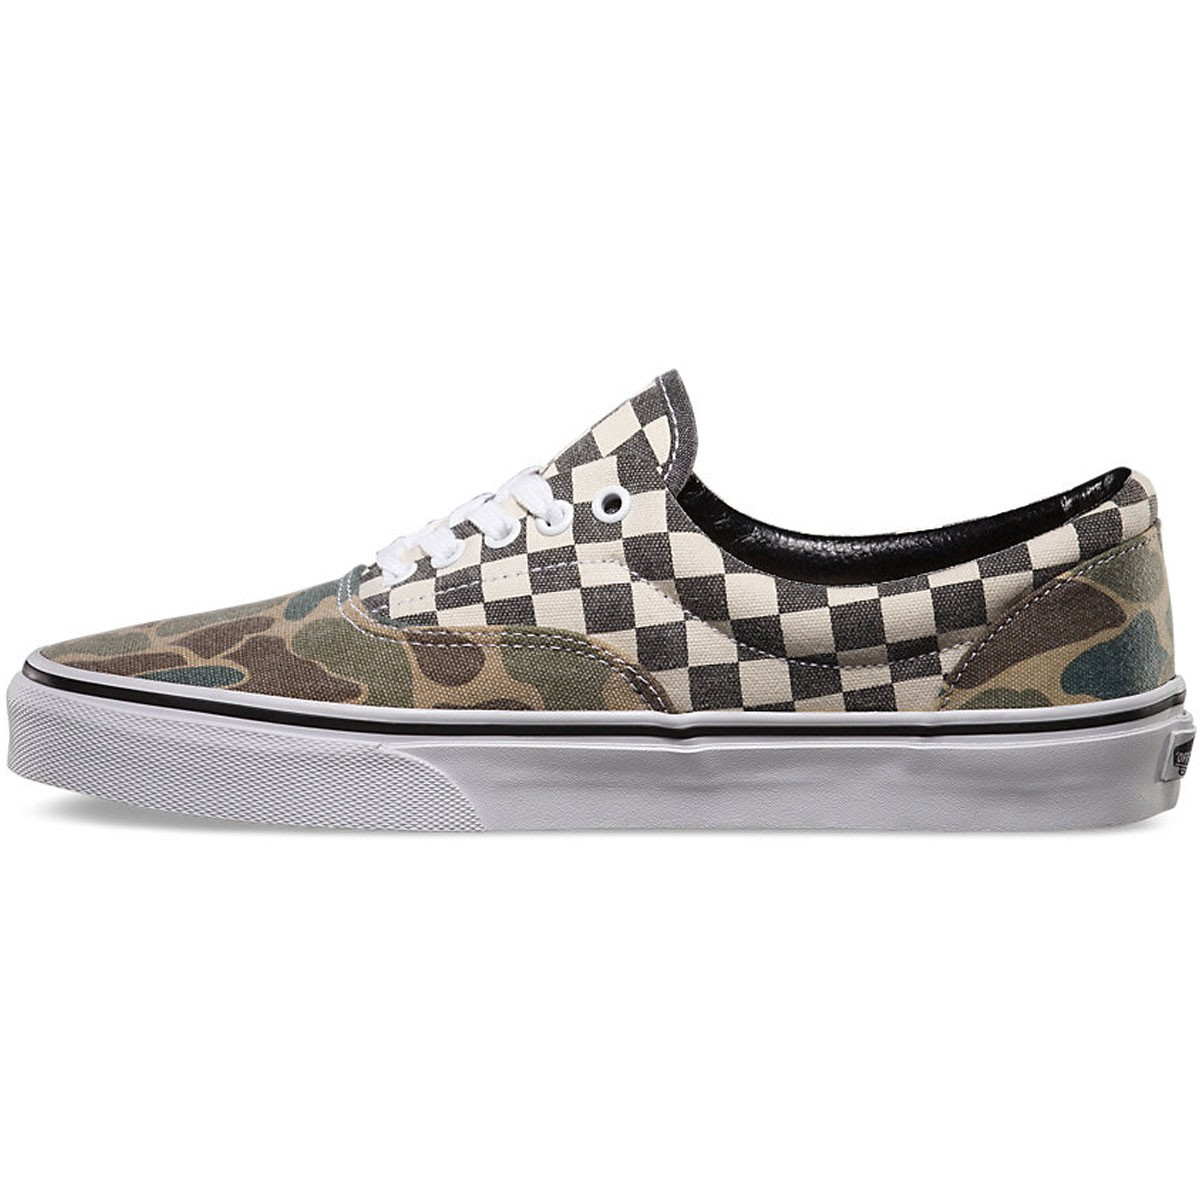 6c26156227 Vans Van Doren Era Shoes - Camo White Checker - 10.0